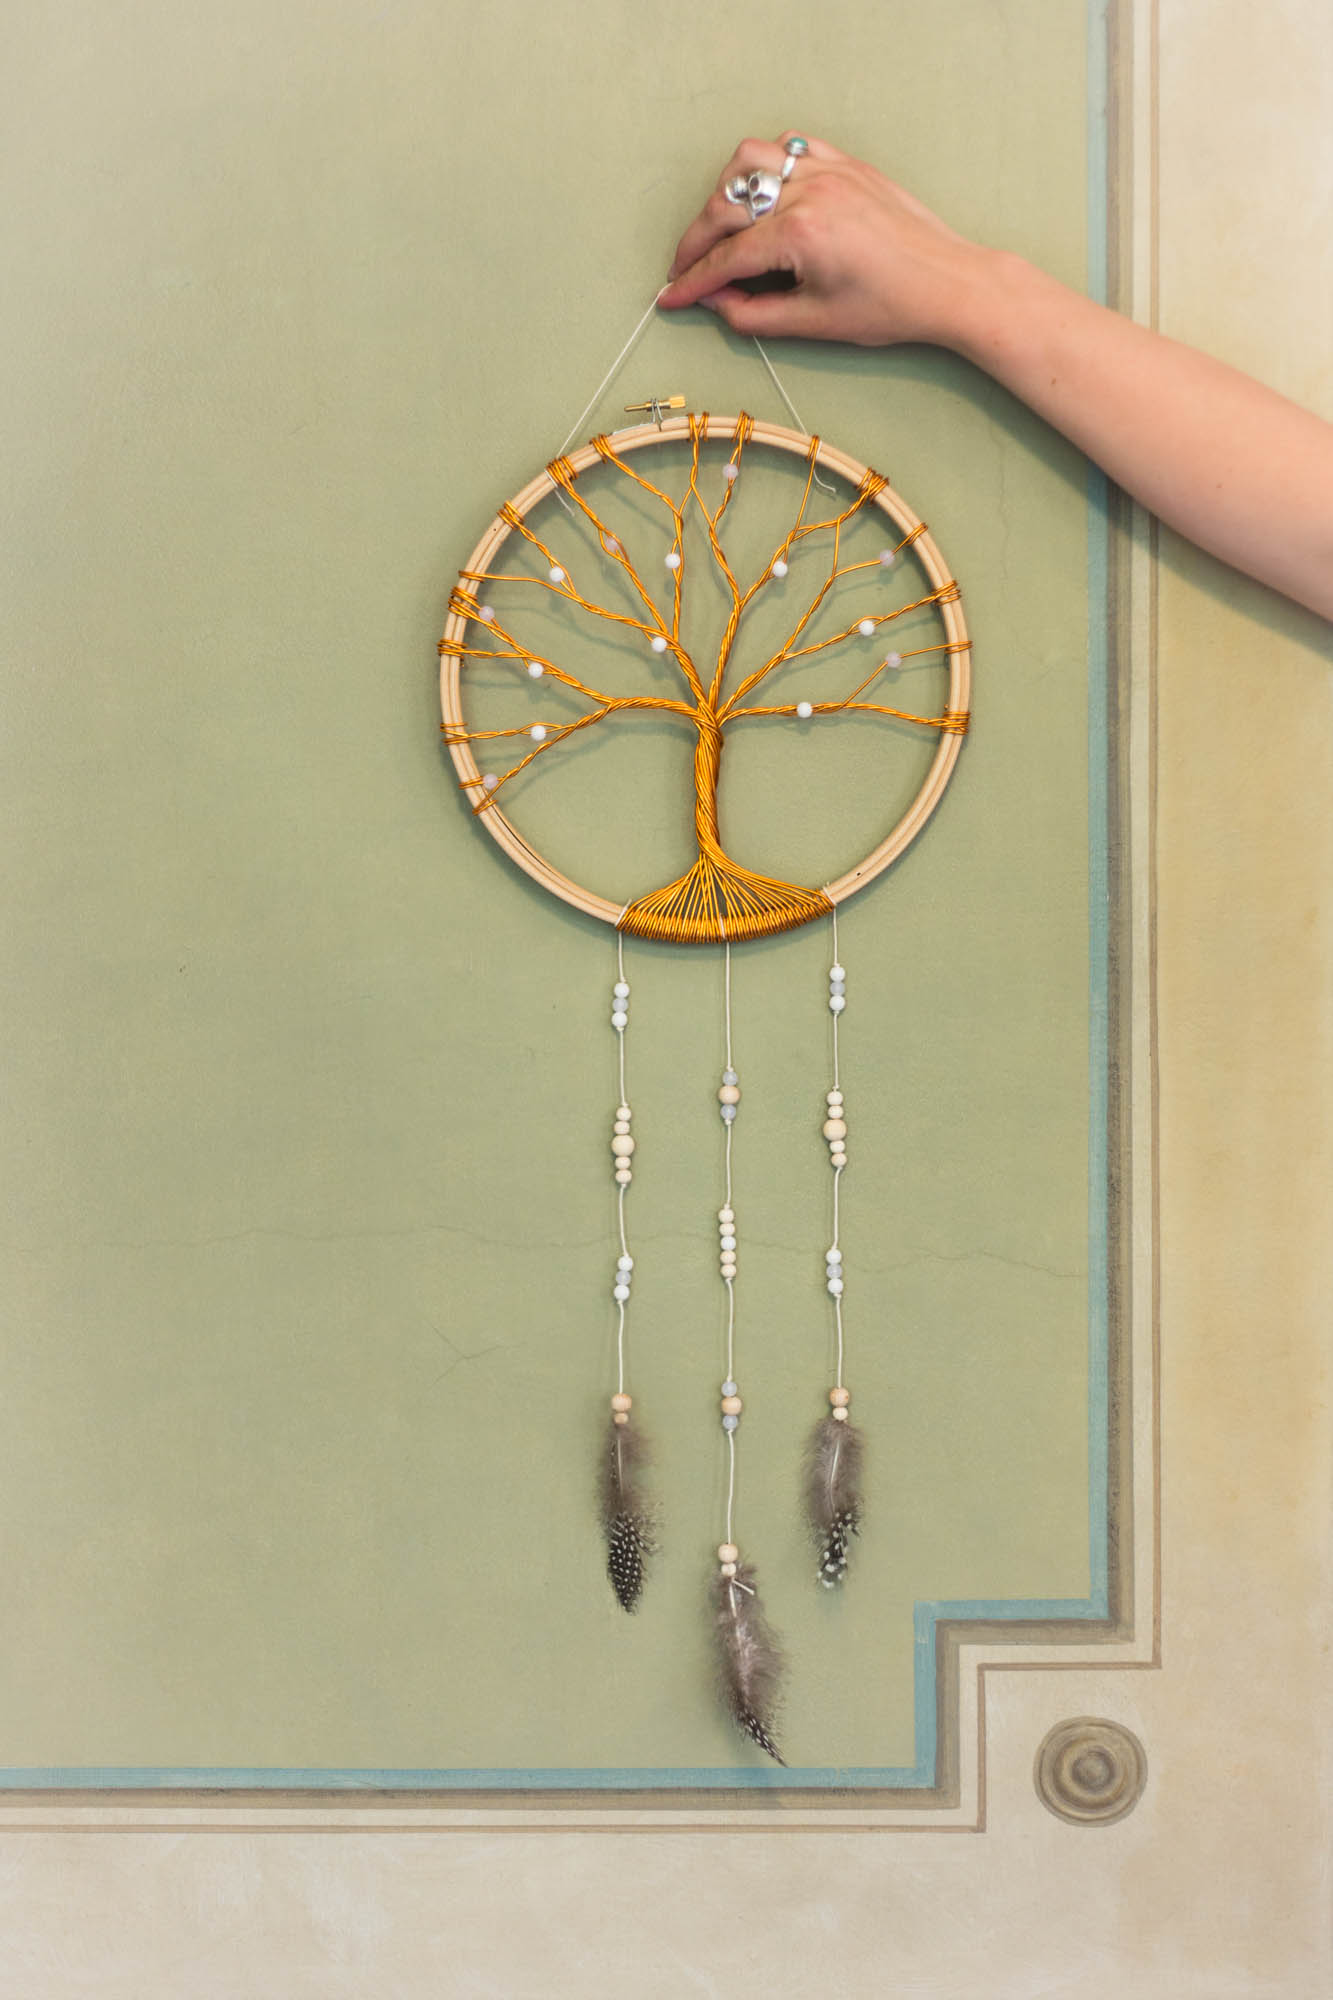 Skillbreak workshop – Dreamcatcher